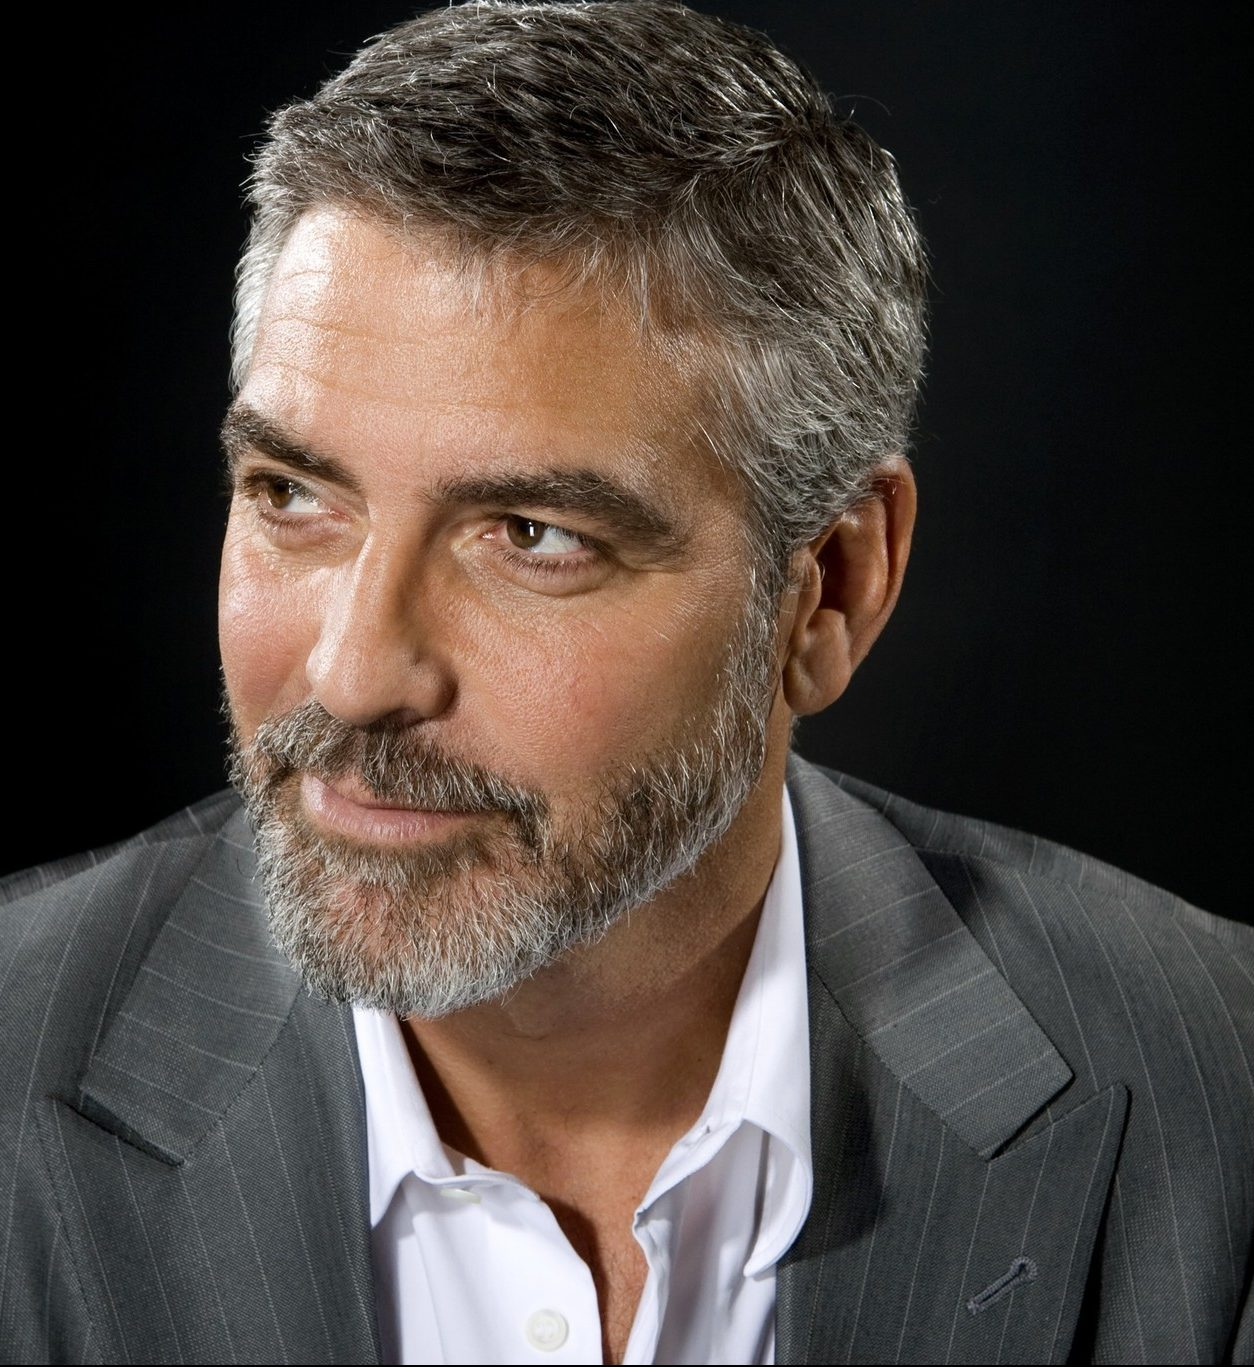 George Clooney Net Worth 2019 is in The Millions